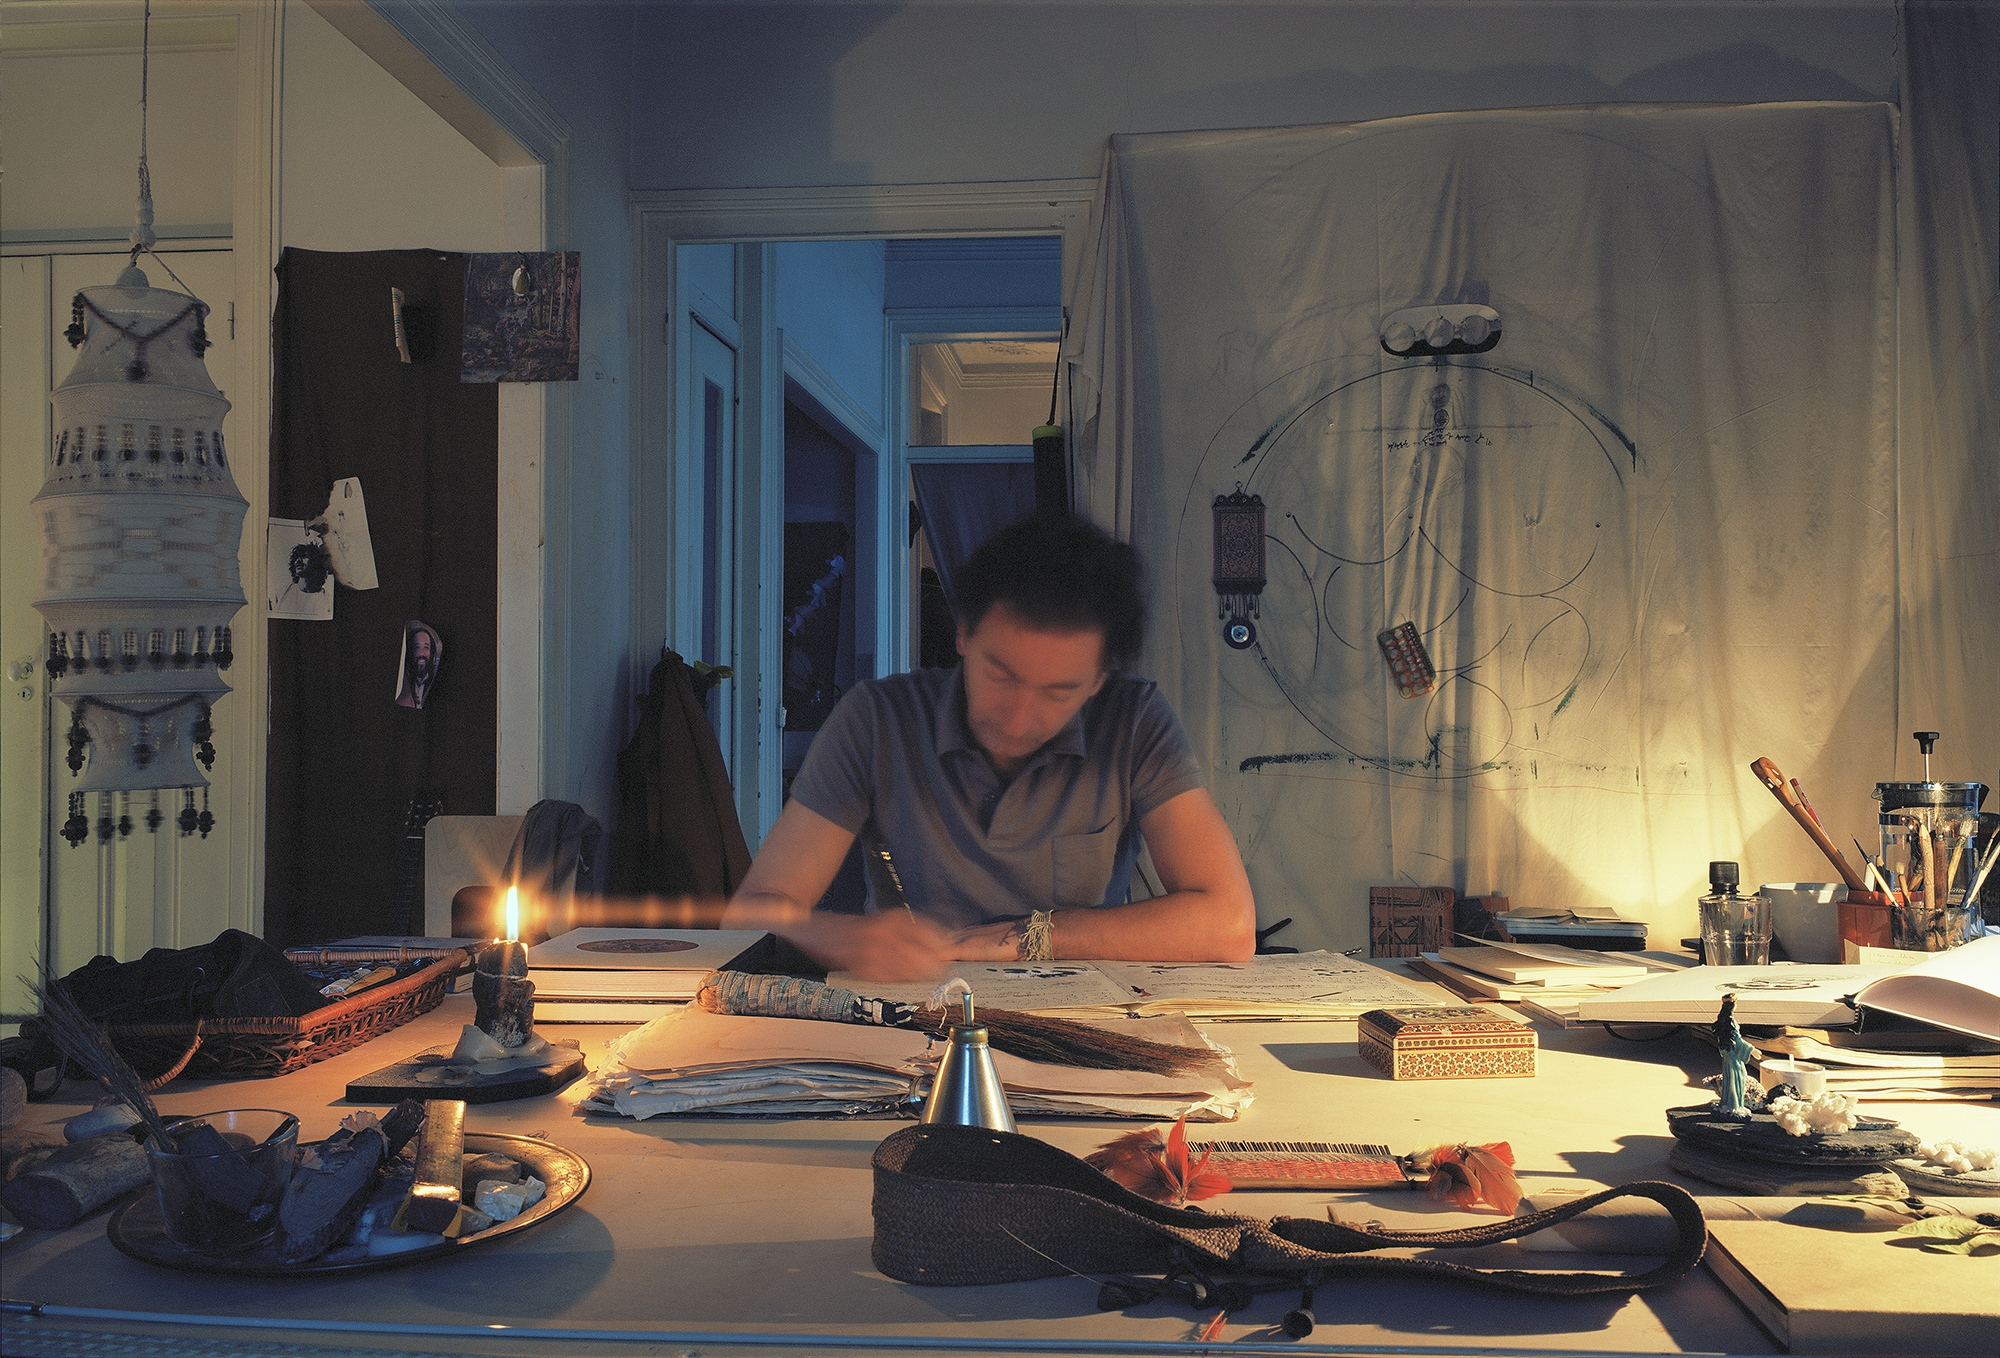 Antonio Poppe working in his Studio, Lisbon, Portugal. 2014. This image was made with color film with a Fuji GW690 III camera, in 6x9 format. It was scanned by the artist with Hasselblad flextight X1 professional scanner.  This has a edition of 6 + 3 PA  in the size 75x110 cm. It is printed by the artists in archival quality.